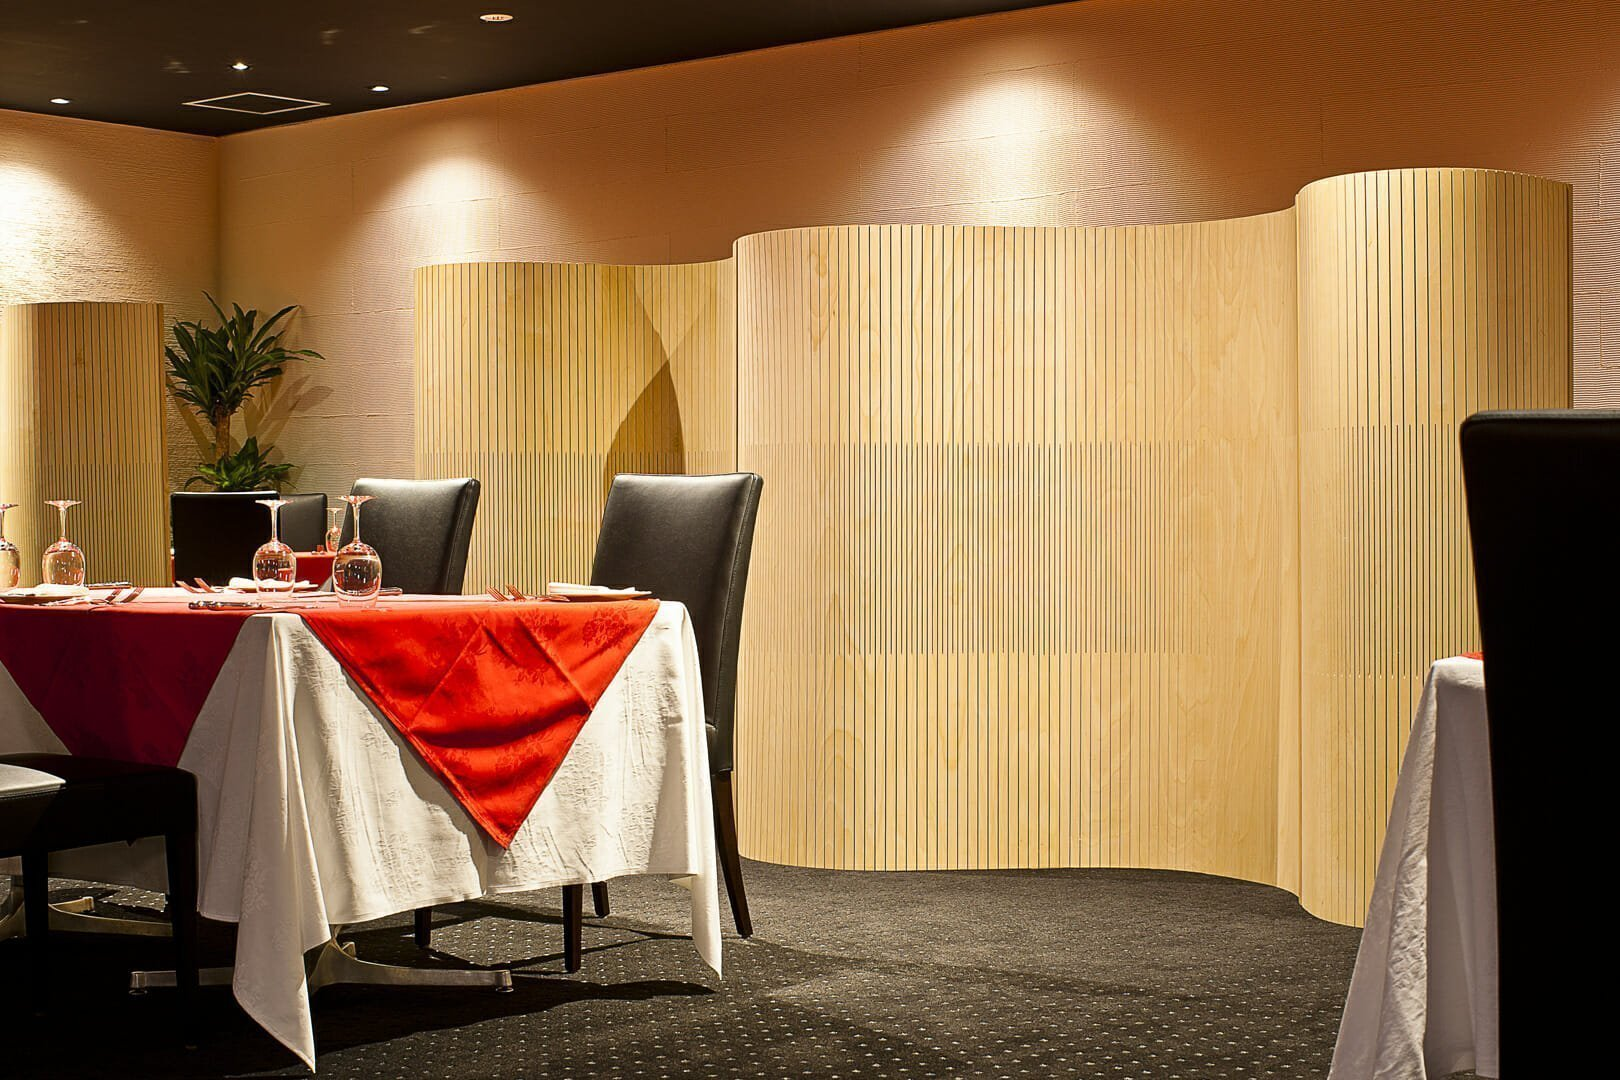 wood partition creating relaxed space for people in restaurant